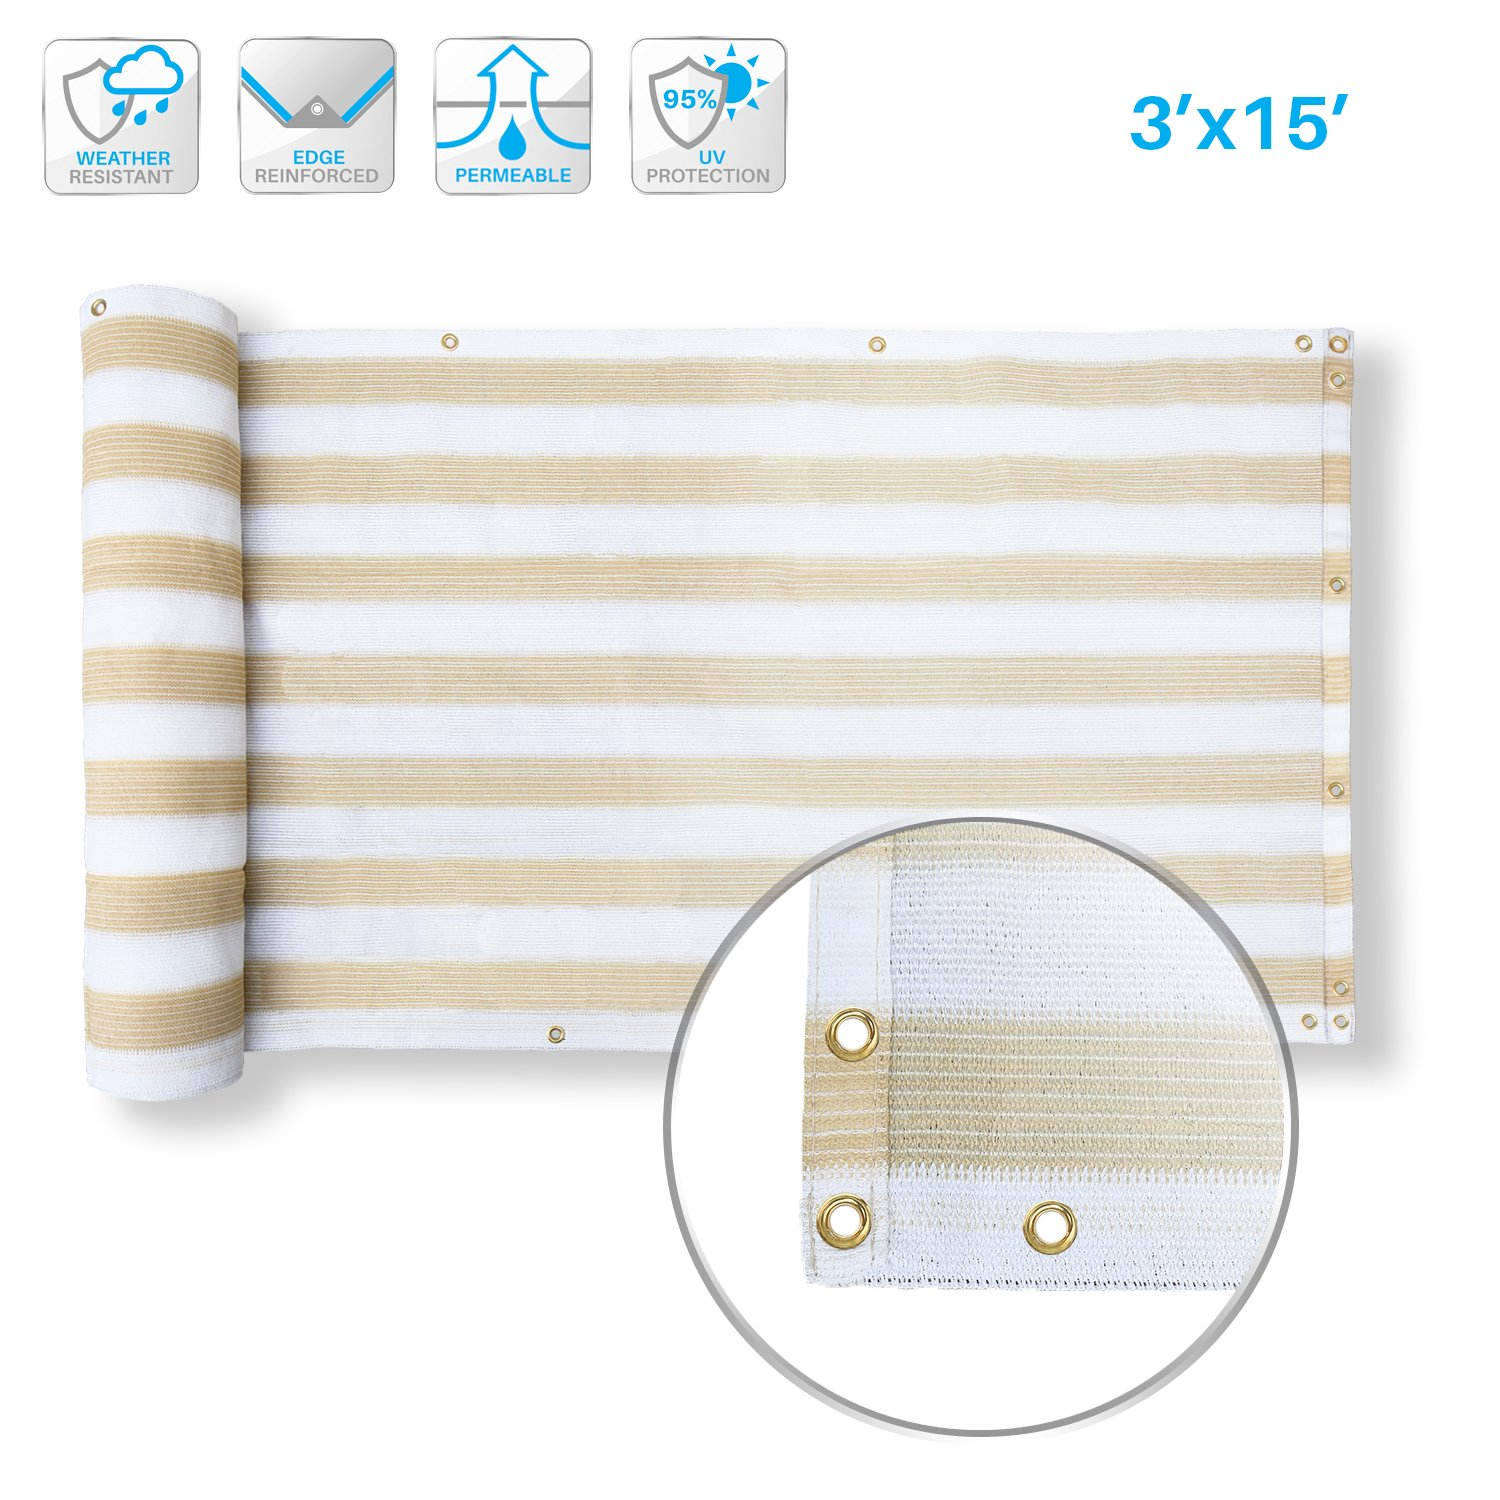 PATIO Deck Privacy Screen 3' x 15' Perfect For Outdoor,Backyard, Balcony,Pool,Porch,Railiing,Gardening,Fence Shield Rails Protection Beige and White-Custom Size Available